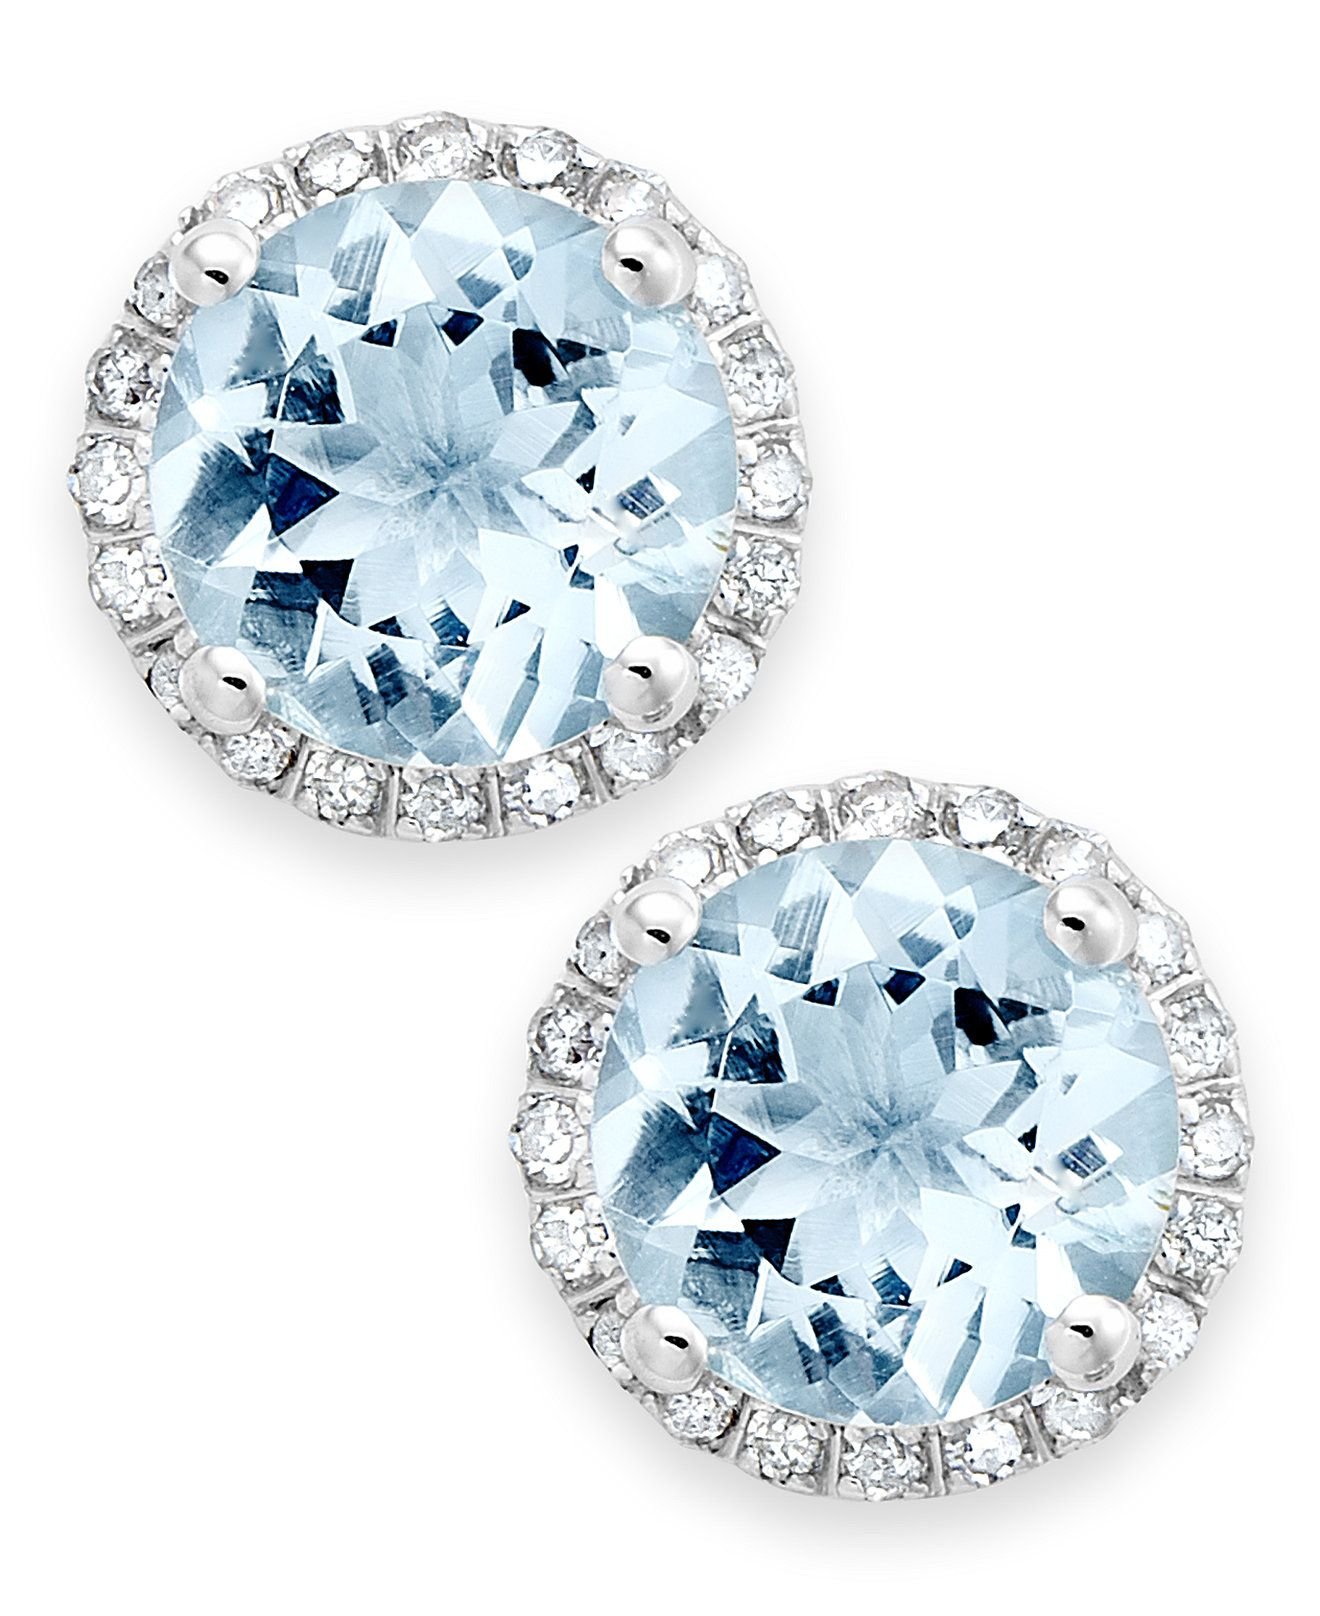 stud plante jewelers products marine aquamarine studs aqua dainty earrings